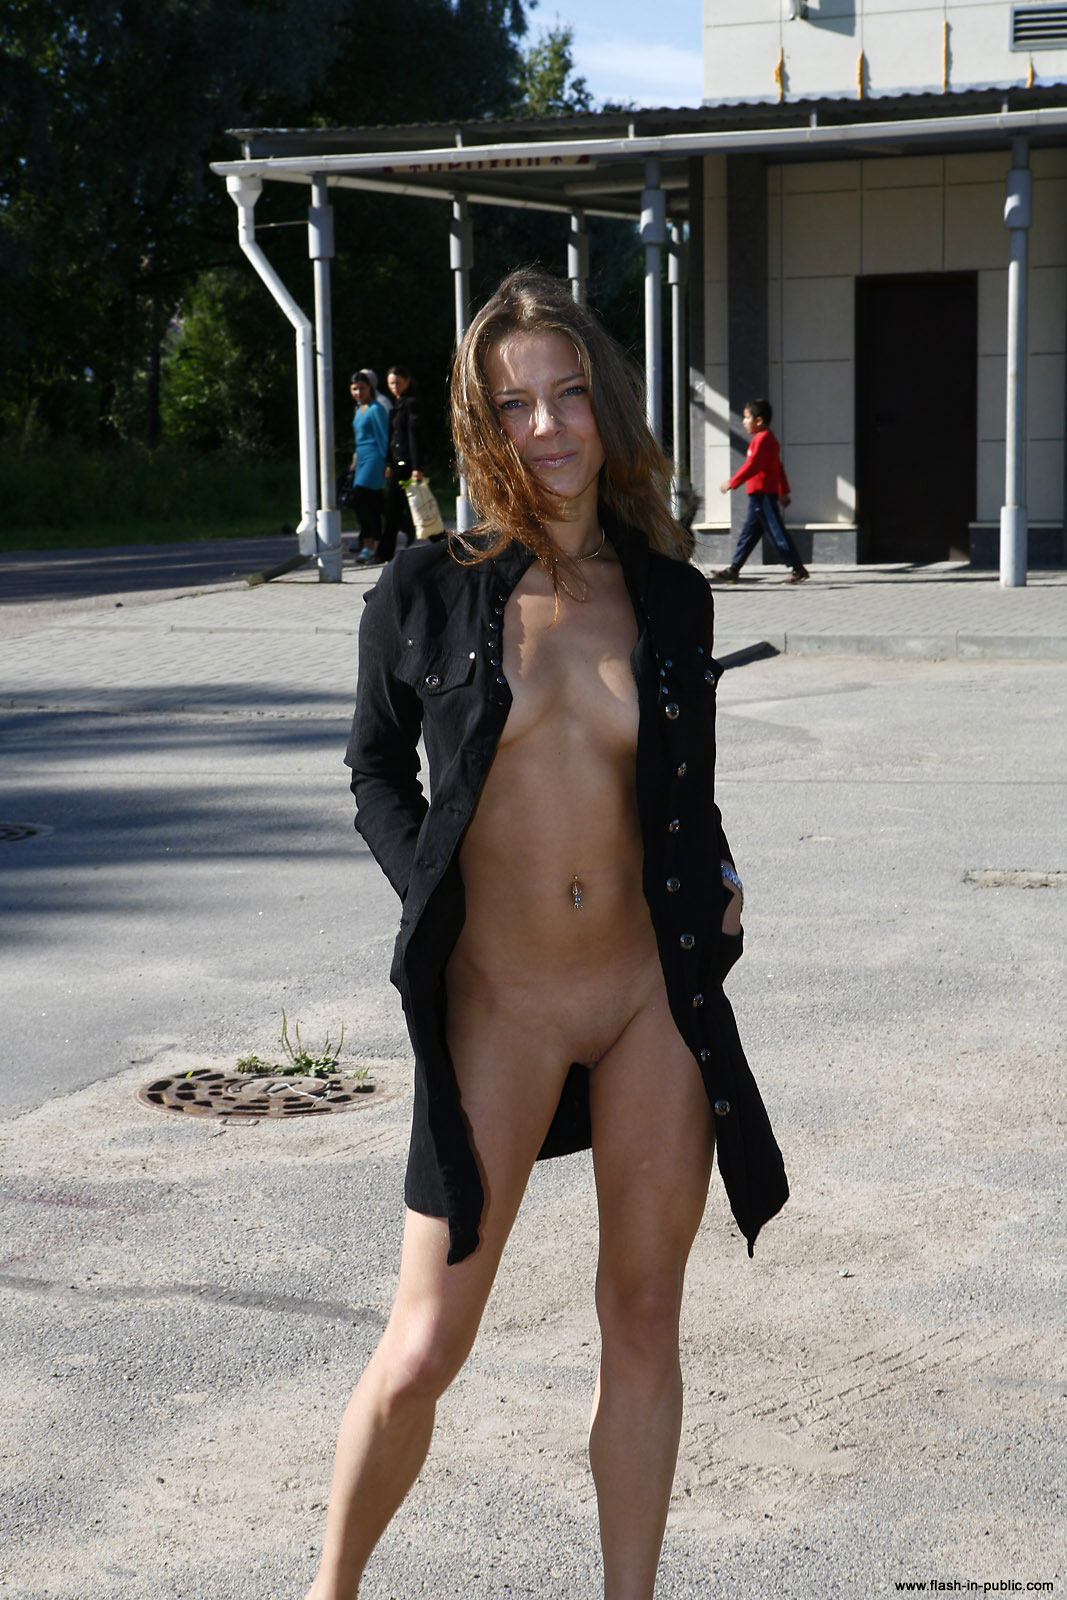 yanina-m-nude-walk-around-the-town-flash-in-public-10